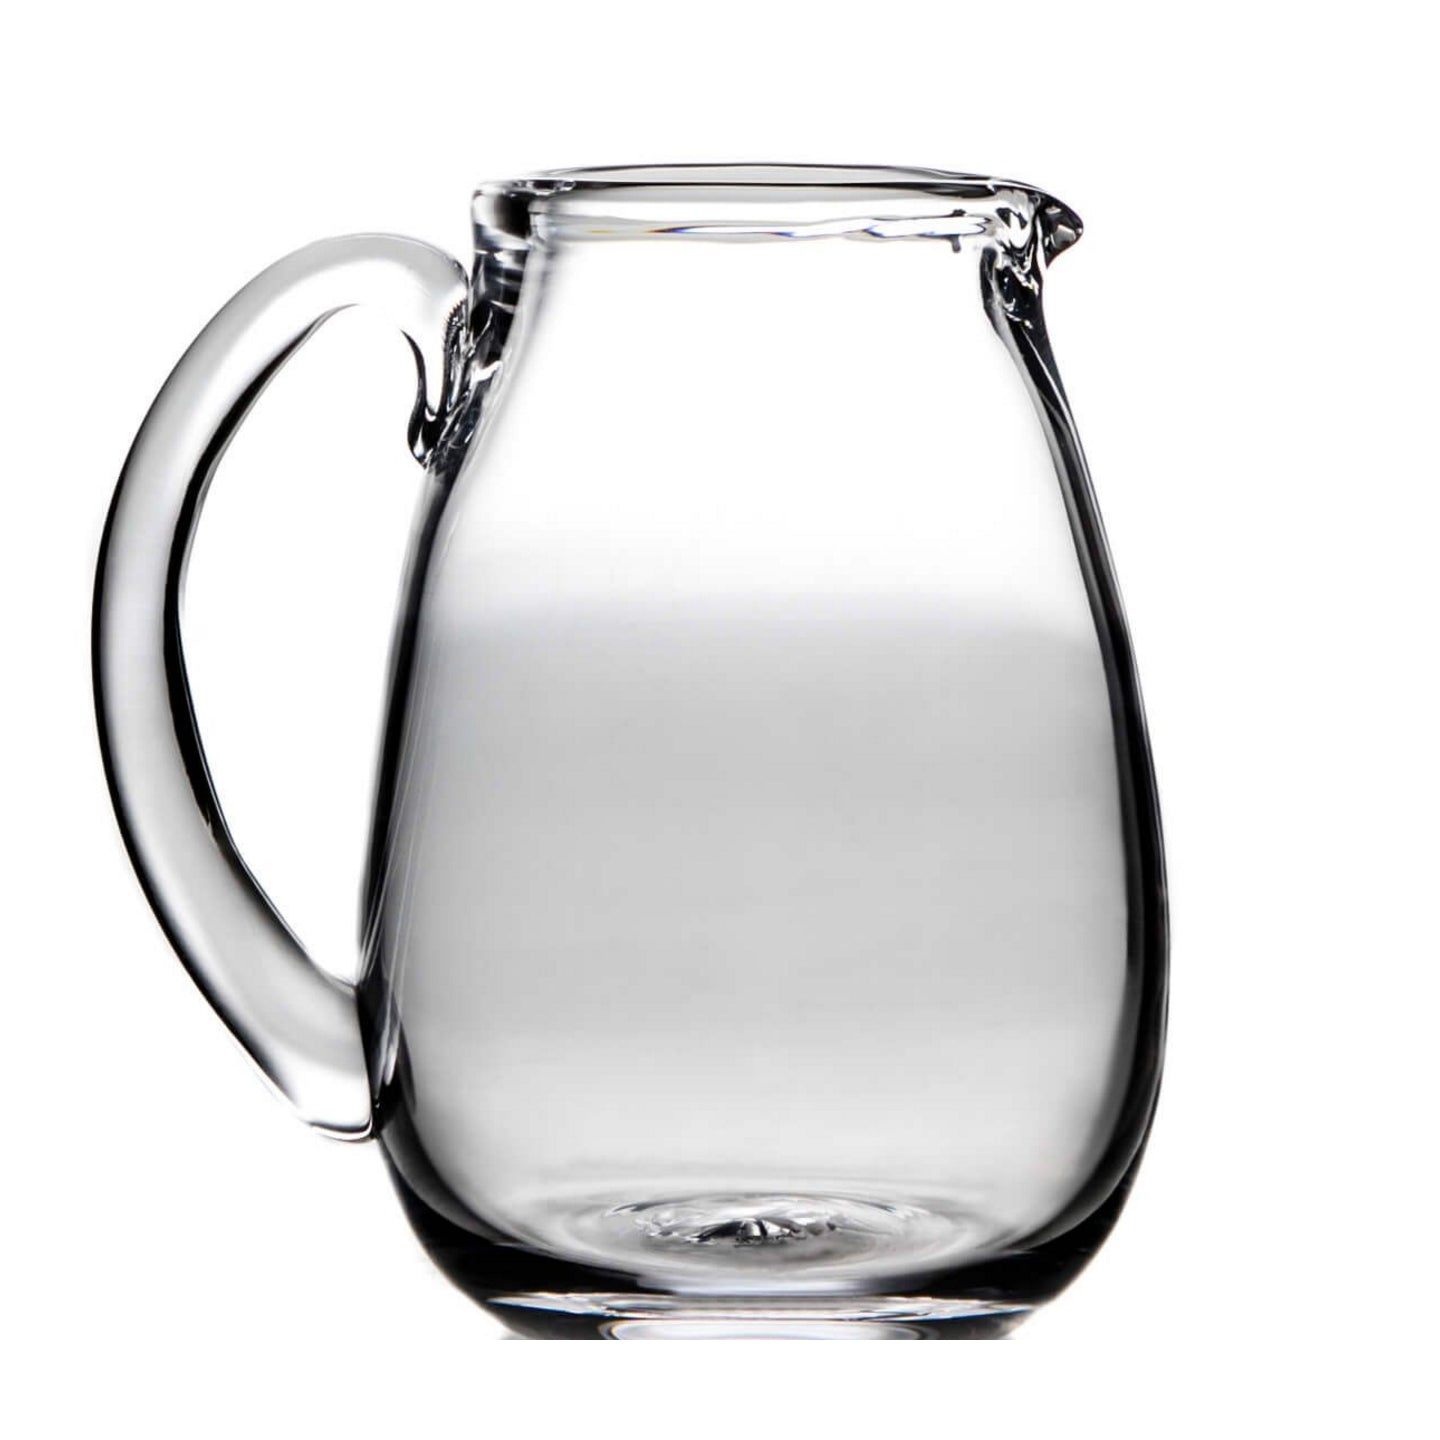 Woodstock Pitcher, Medium